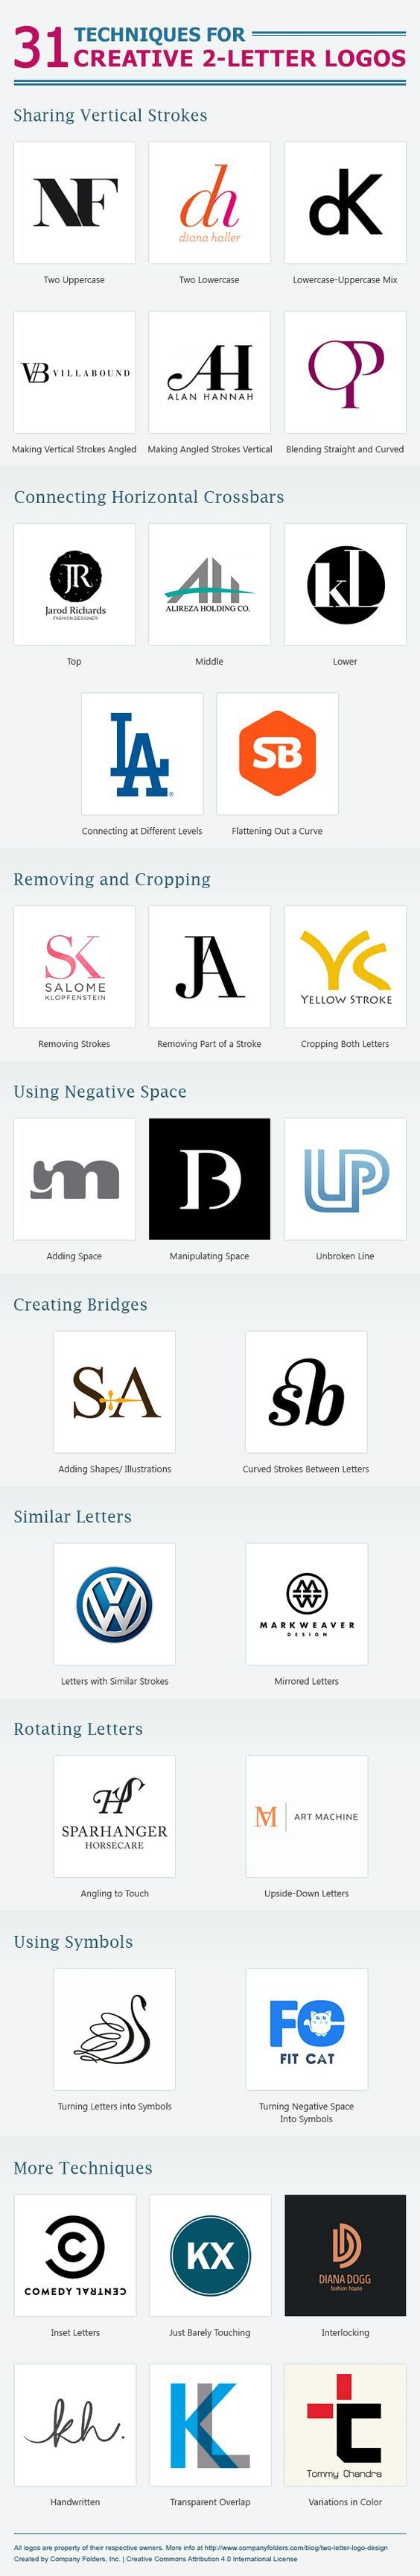 Got a 2-Letter Business Name 31 Ways to Make Your Logo More Creative #Business # Design